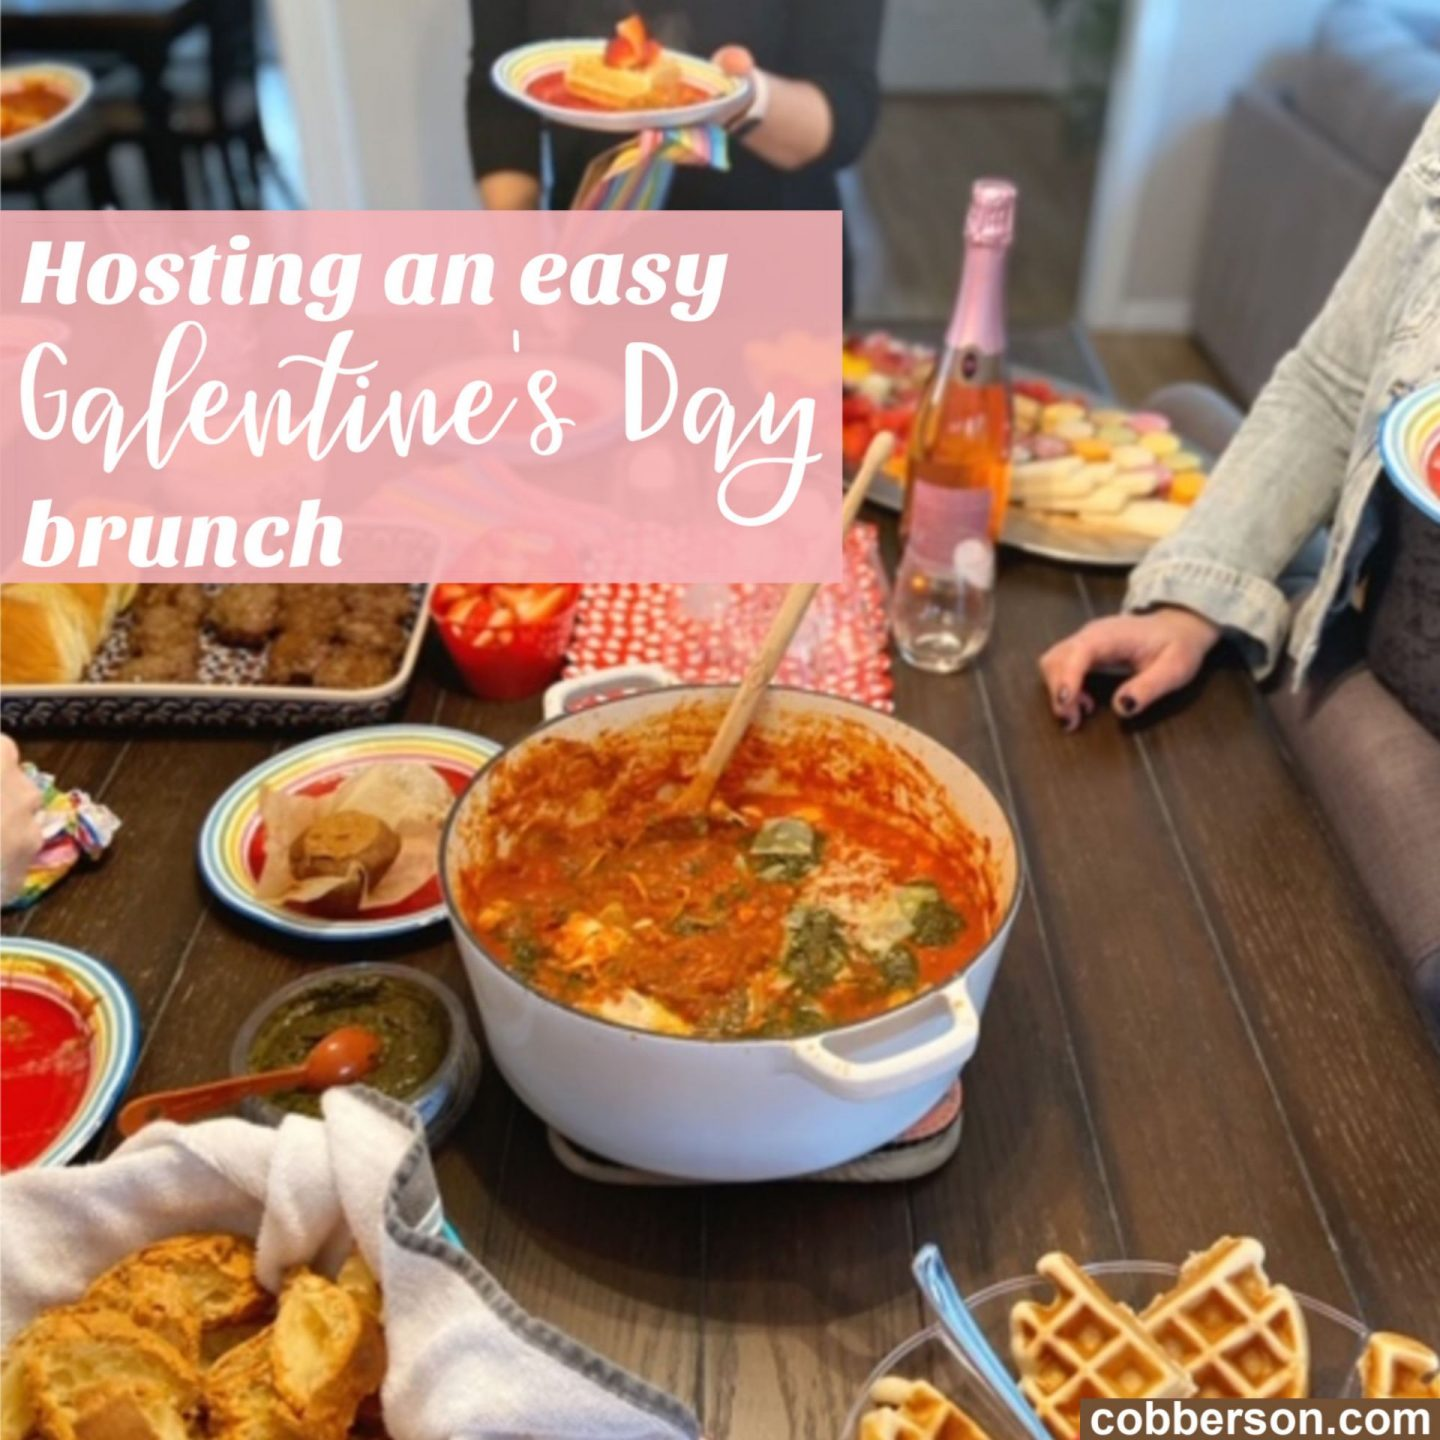 Host an easy and festive Galentine's Day brunch